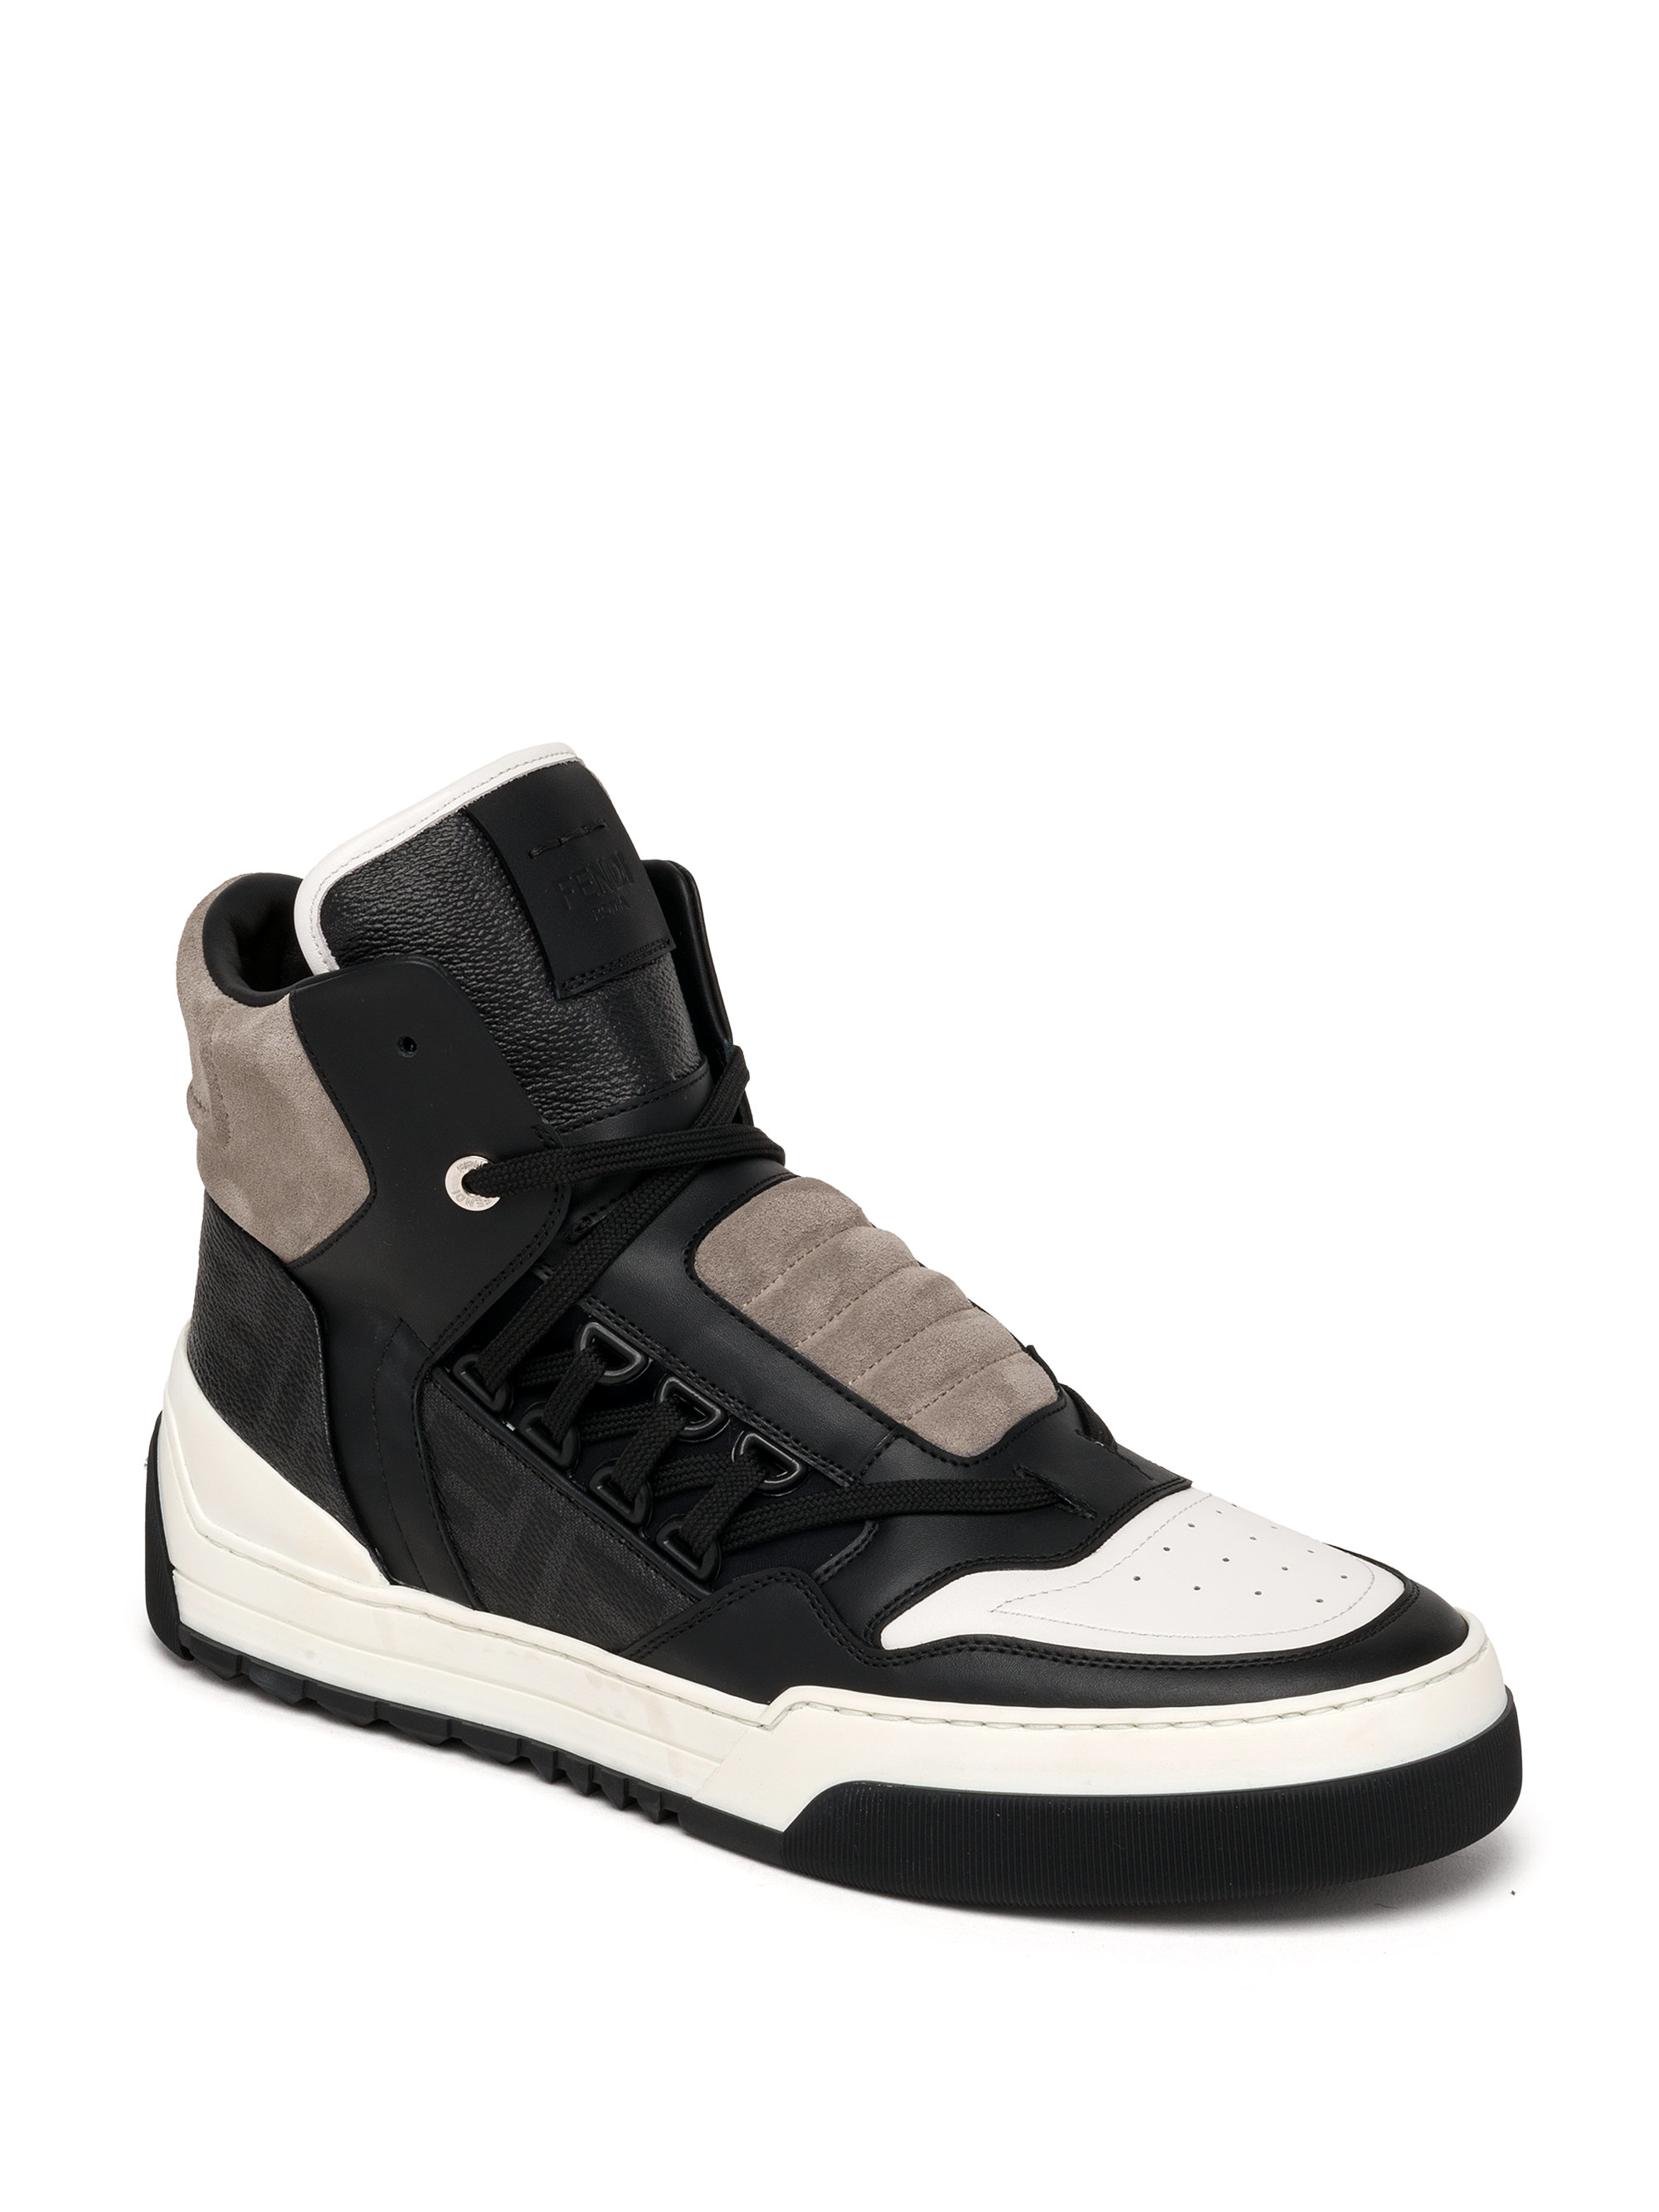 4d8c1b09 Fendi Black Zucca Paneled High-Top Sneakers for men